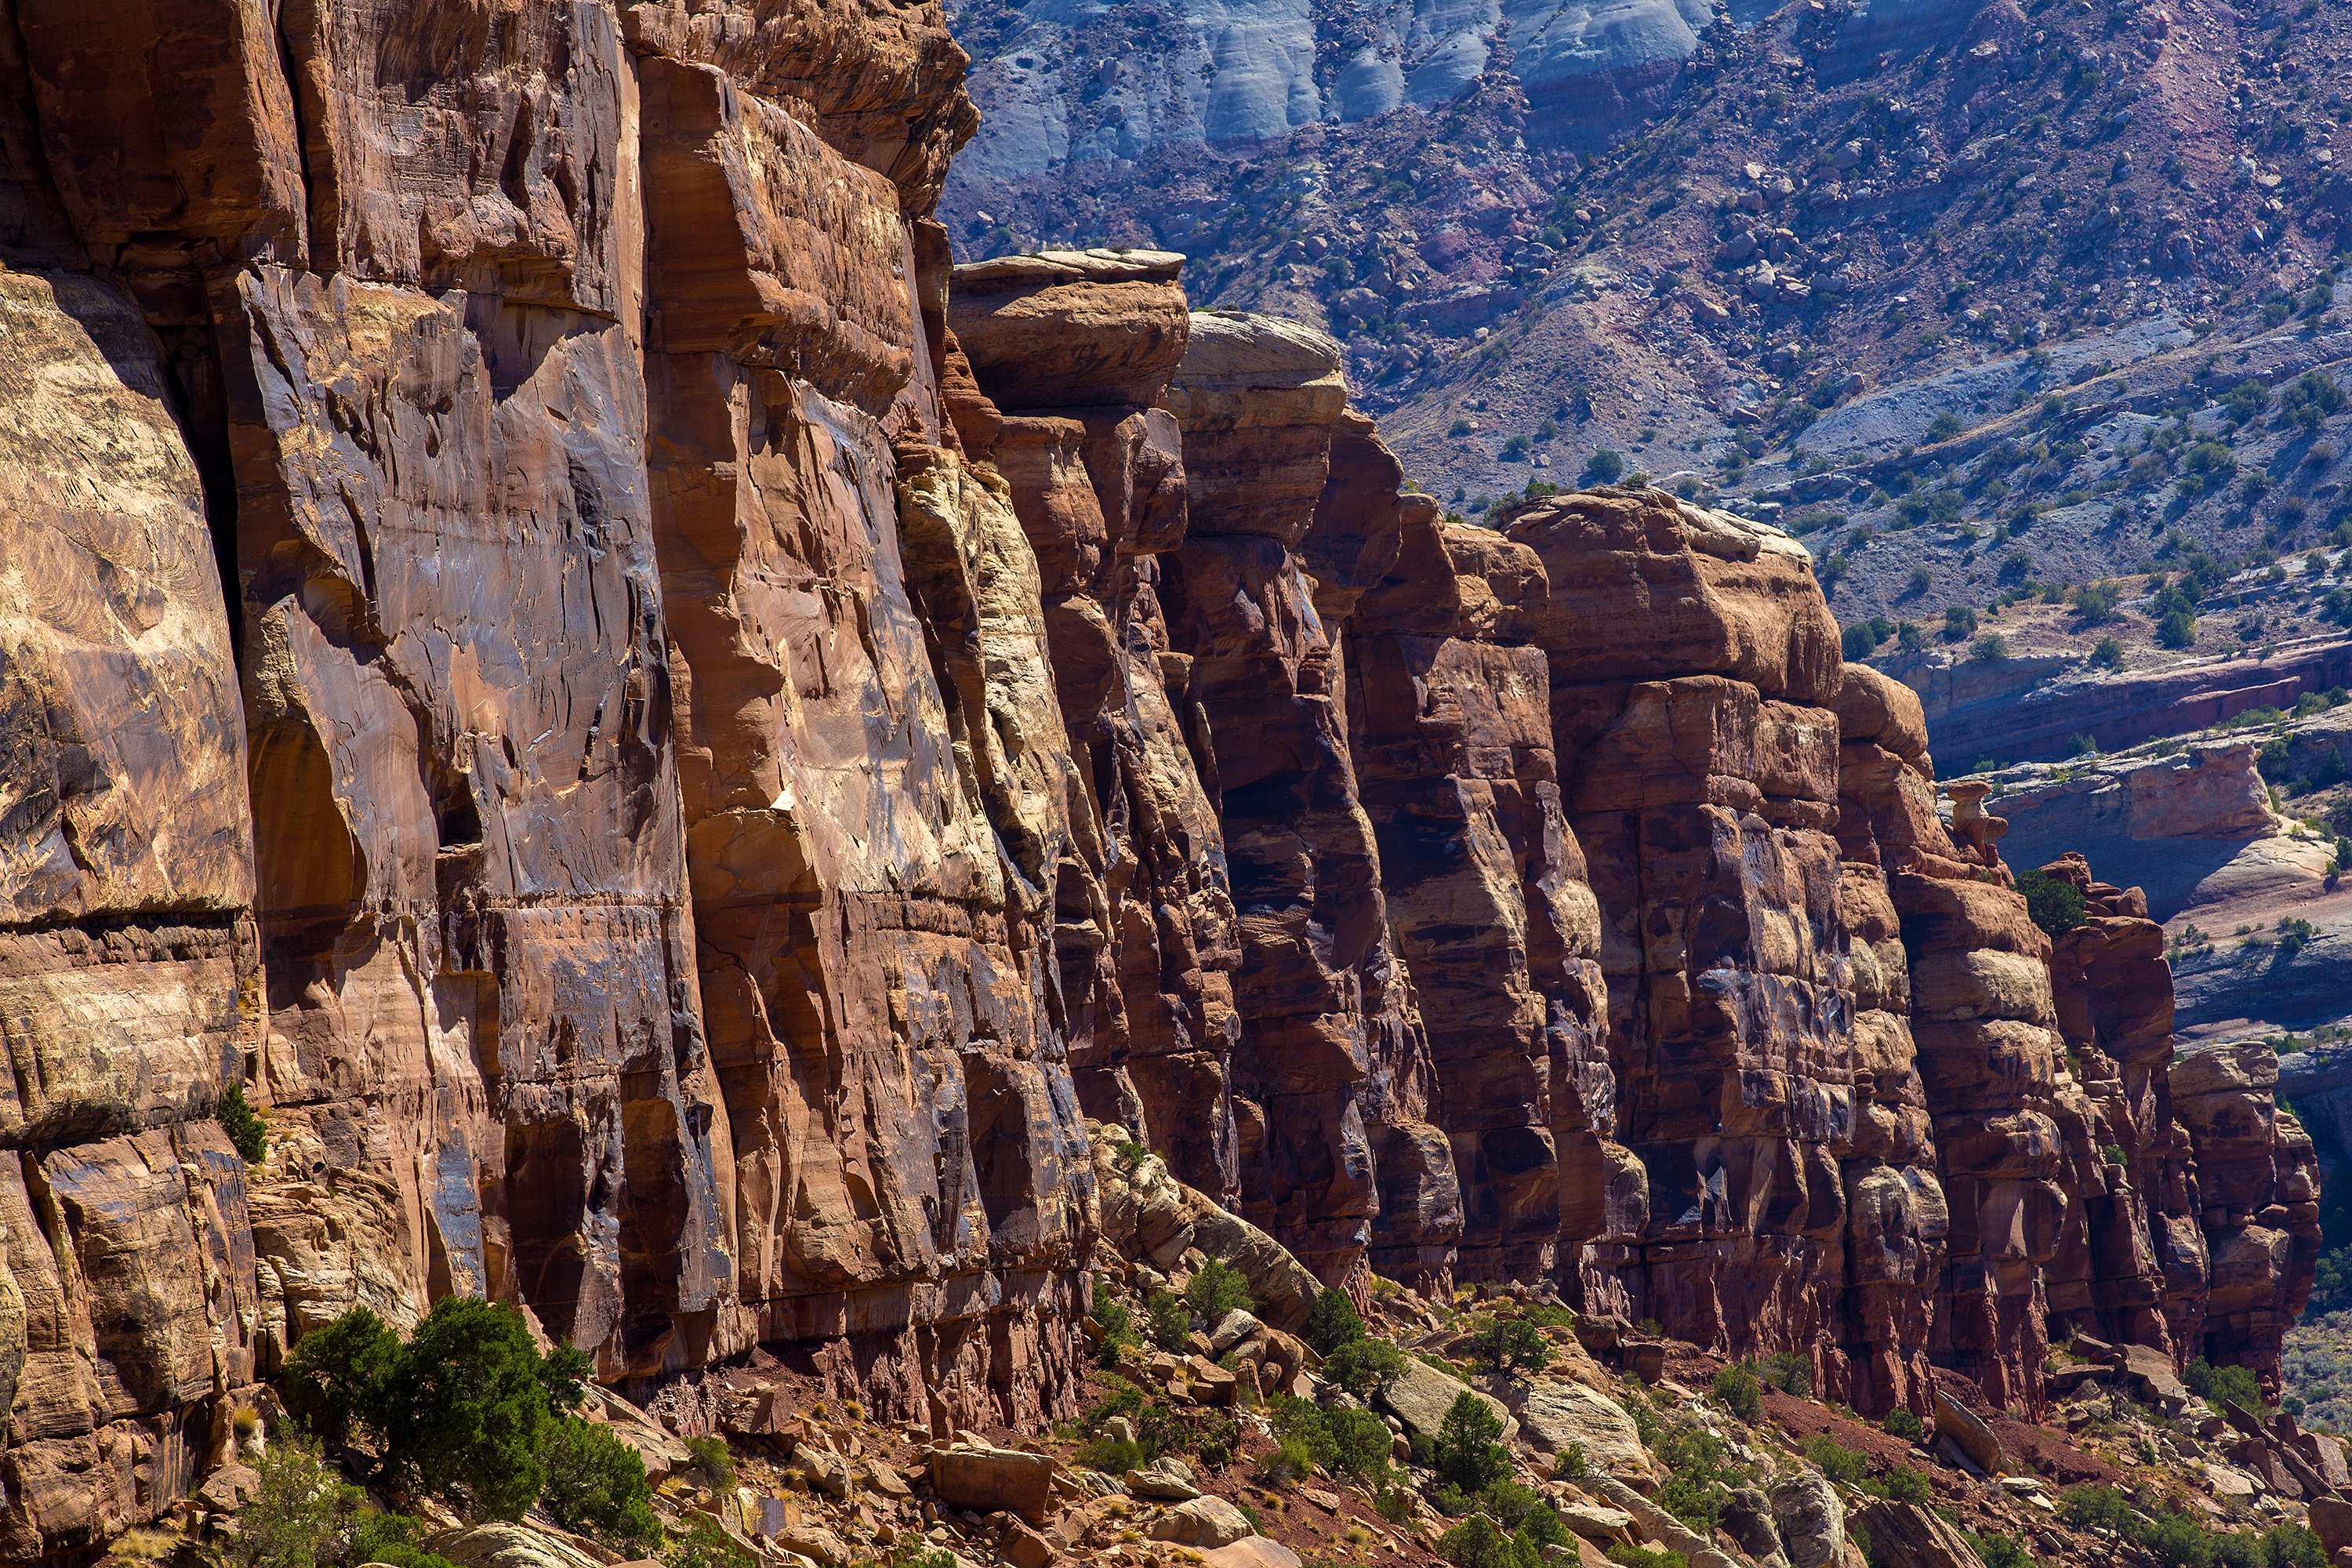 The towering red rock cliffs and spires of Colorado National Monument are just a few miles outside of Grand Junction -- public land close enough to enjoy up close and personally after a day at work for anyone in the city so inclined. This is a view from Red Canyon Overlook on Rim Rock Drive, on the way up from the East Entrance.